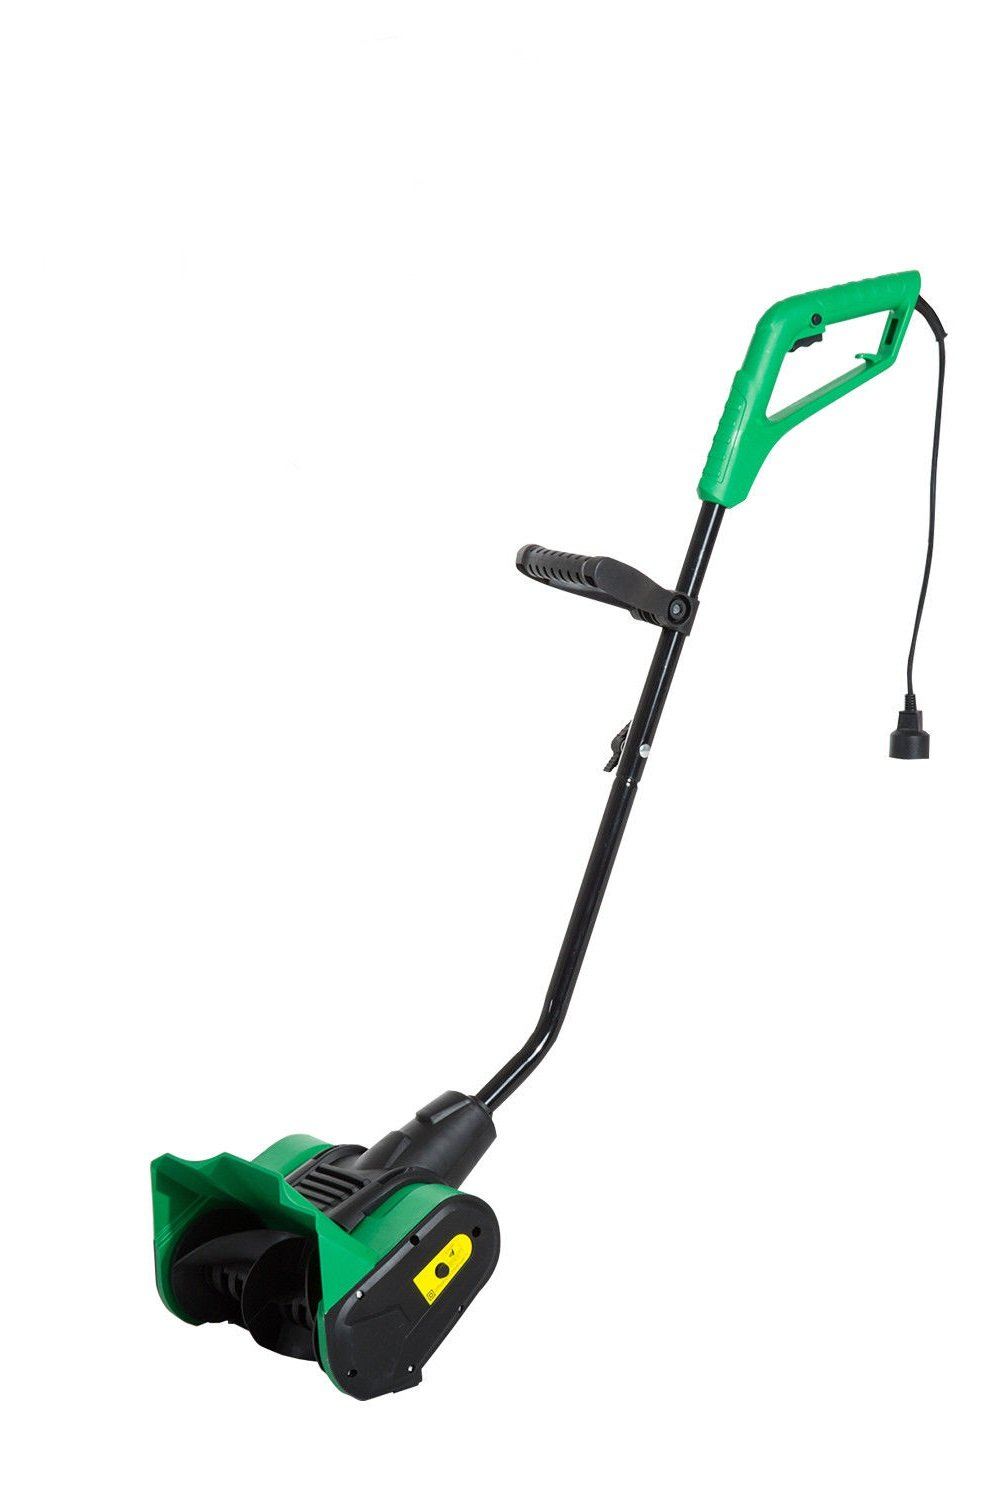 Rolling Power Shovel 12'' Electric 9 Amp Powered Snow Thrower Steel PP Green